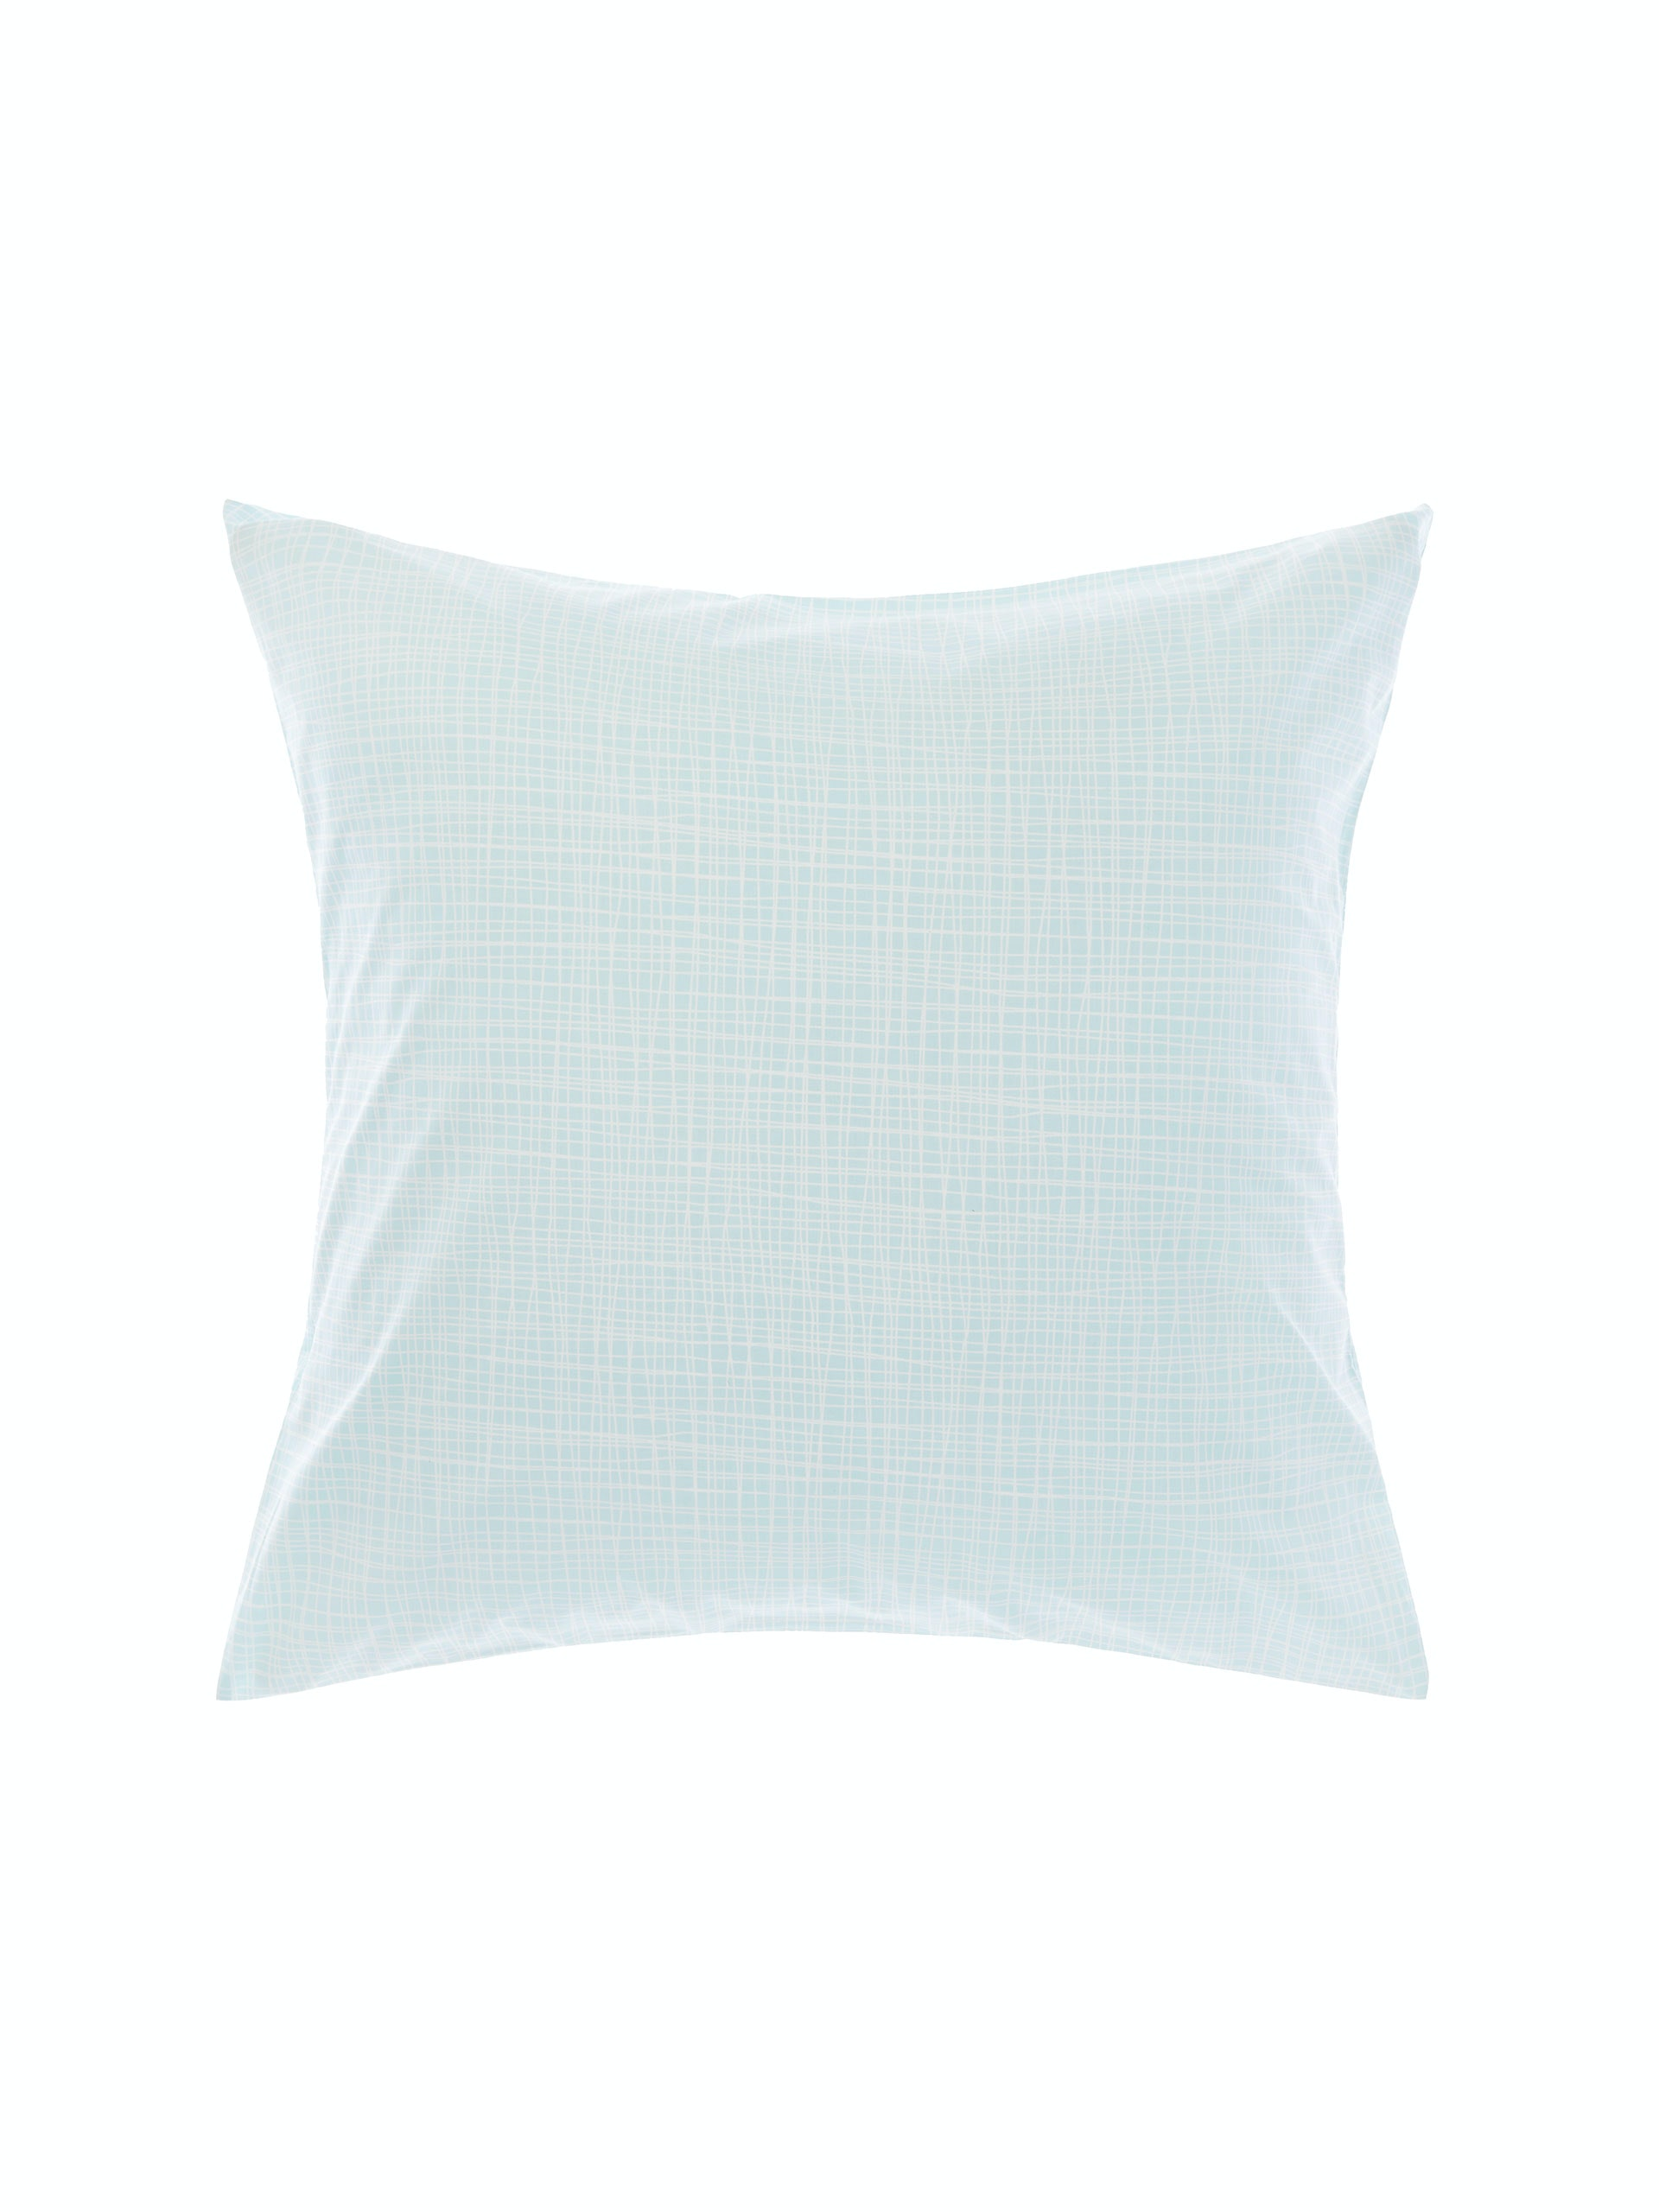 Meiko Mint European Pillowcase by Linen House Nu Edition